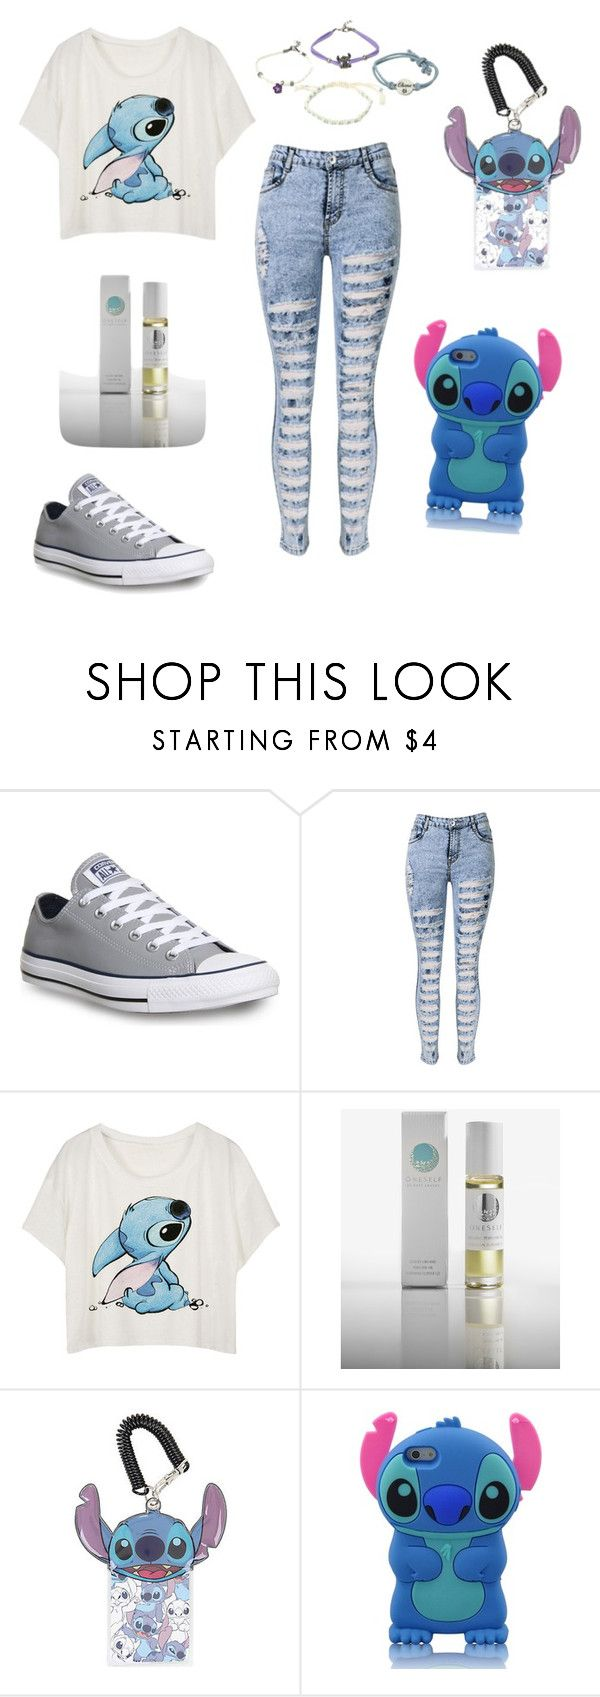 """""""Lilo & Stitch"""" by abrooke2012 on Polyvore featuring Converse, OneSelf, Disney, women's clothing, women, female, woman, misses and juniors"""